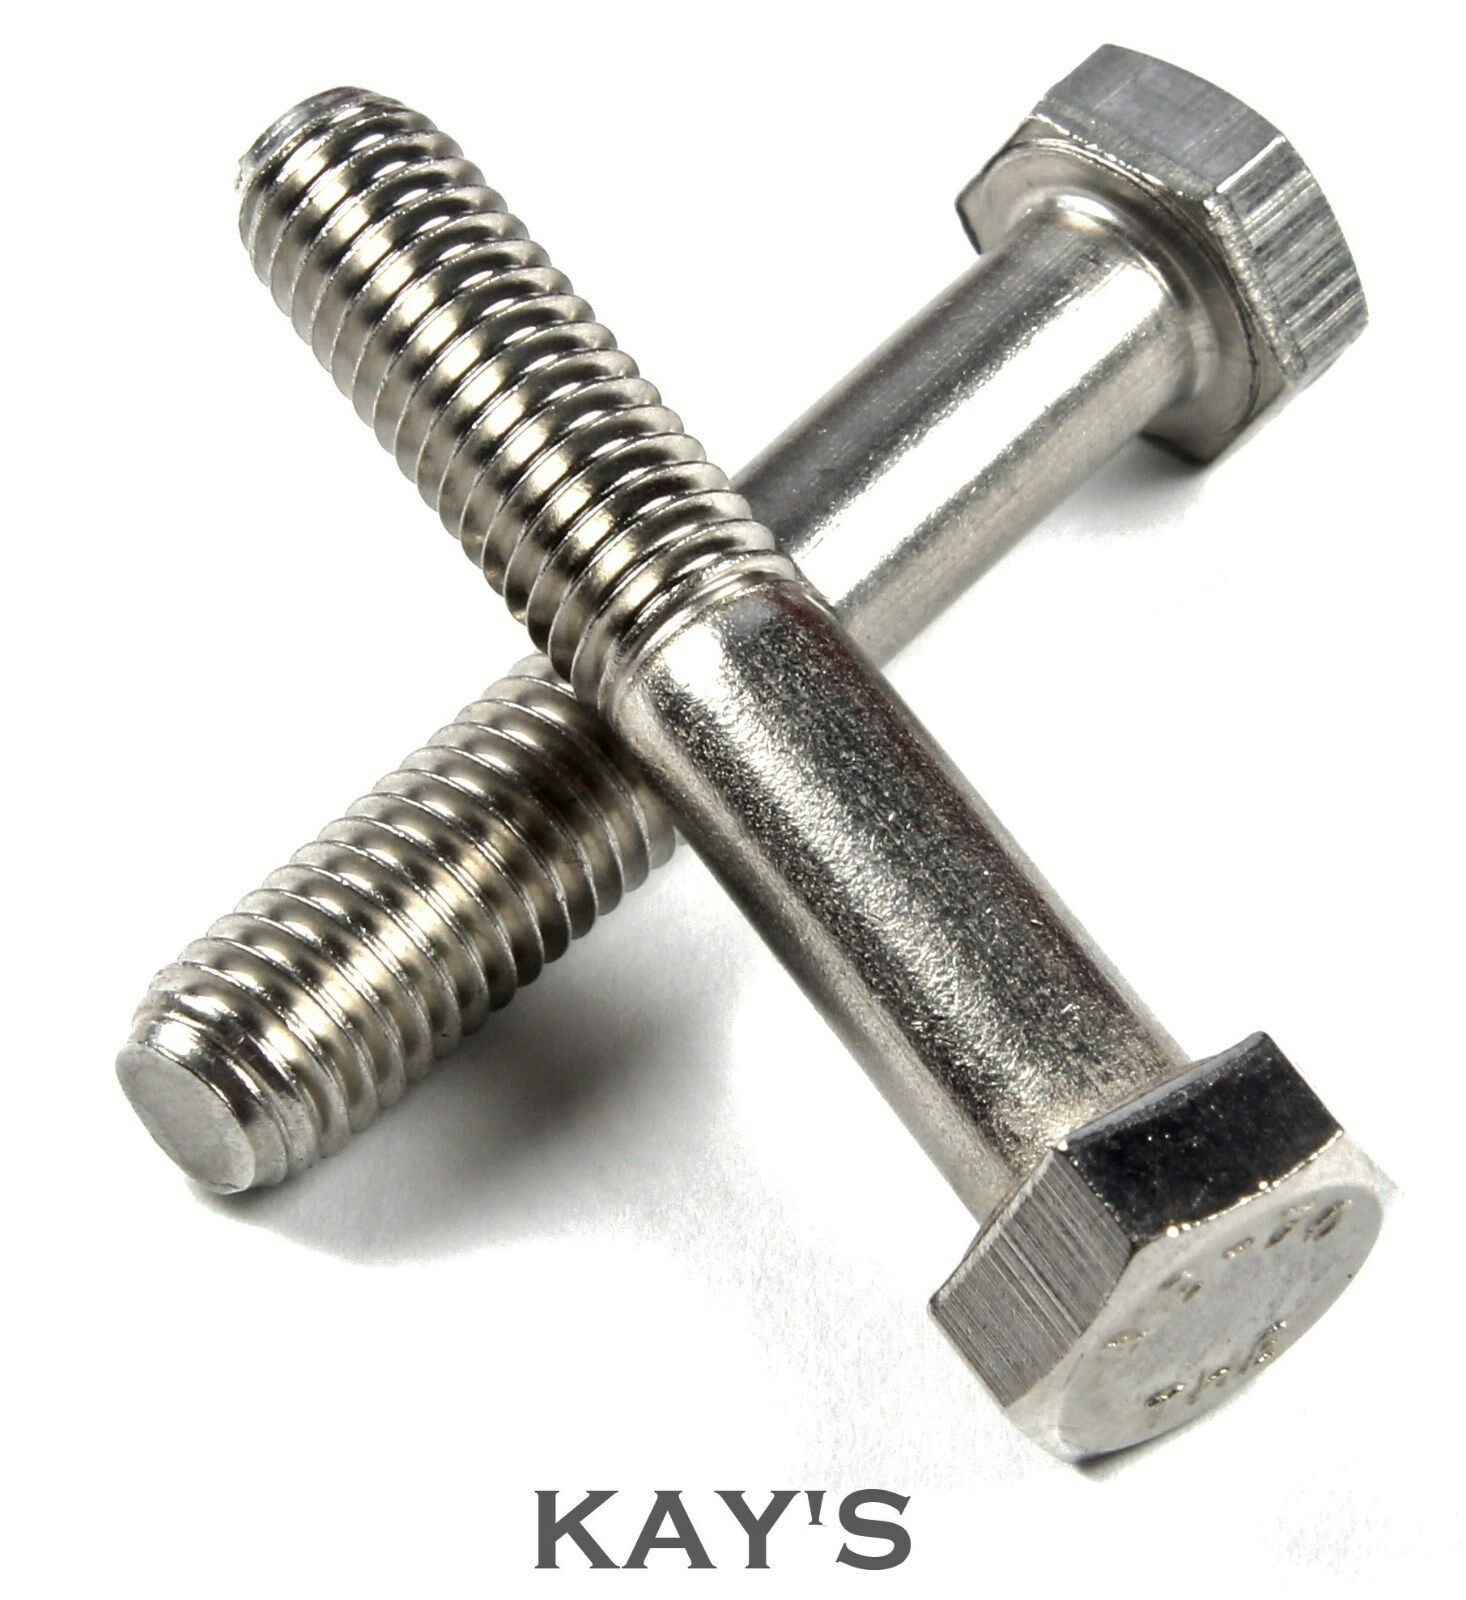 M8 (8mmØ) PART THREADED HEXAGON HEAD BOLTS HEX SCREWS A2 STAINLESS STEEL